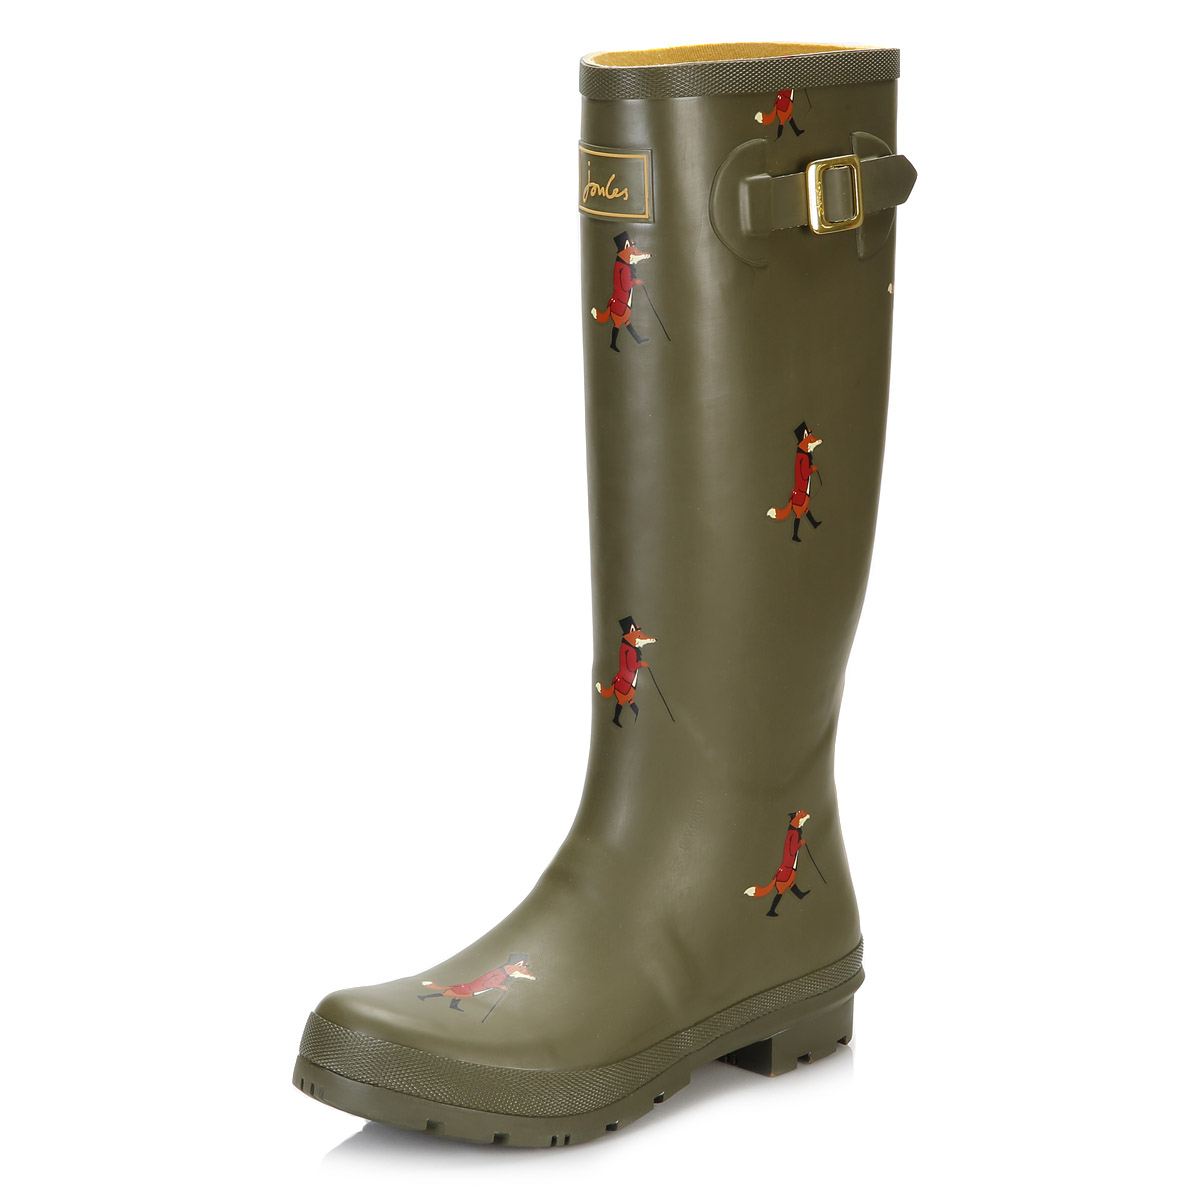 Joules Womens Wellington Boots Blue/Green/Black Wellies ...